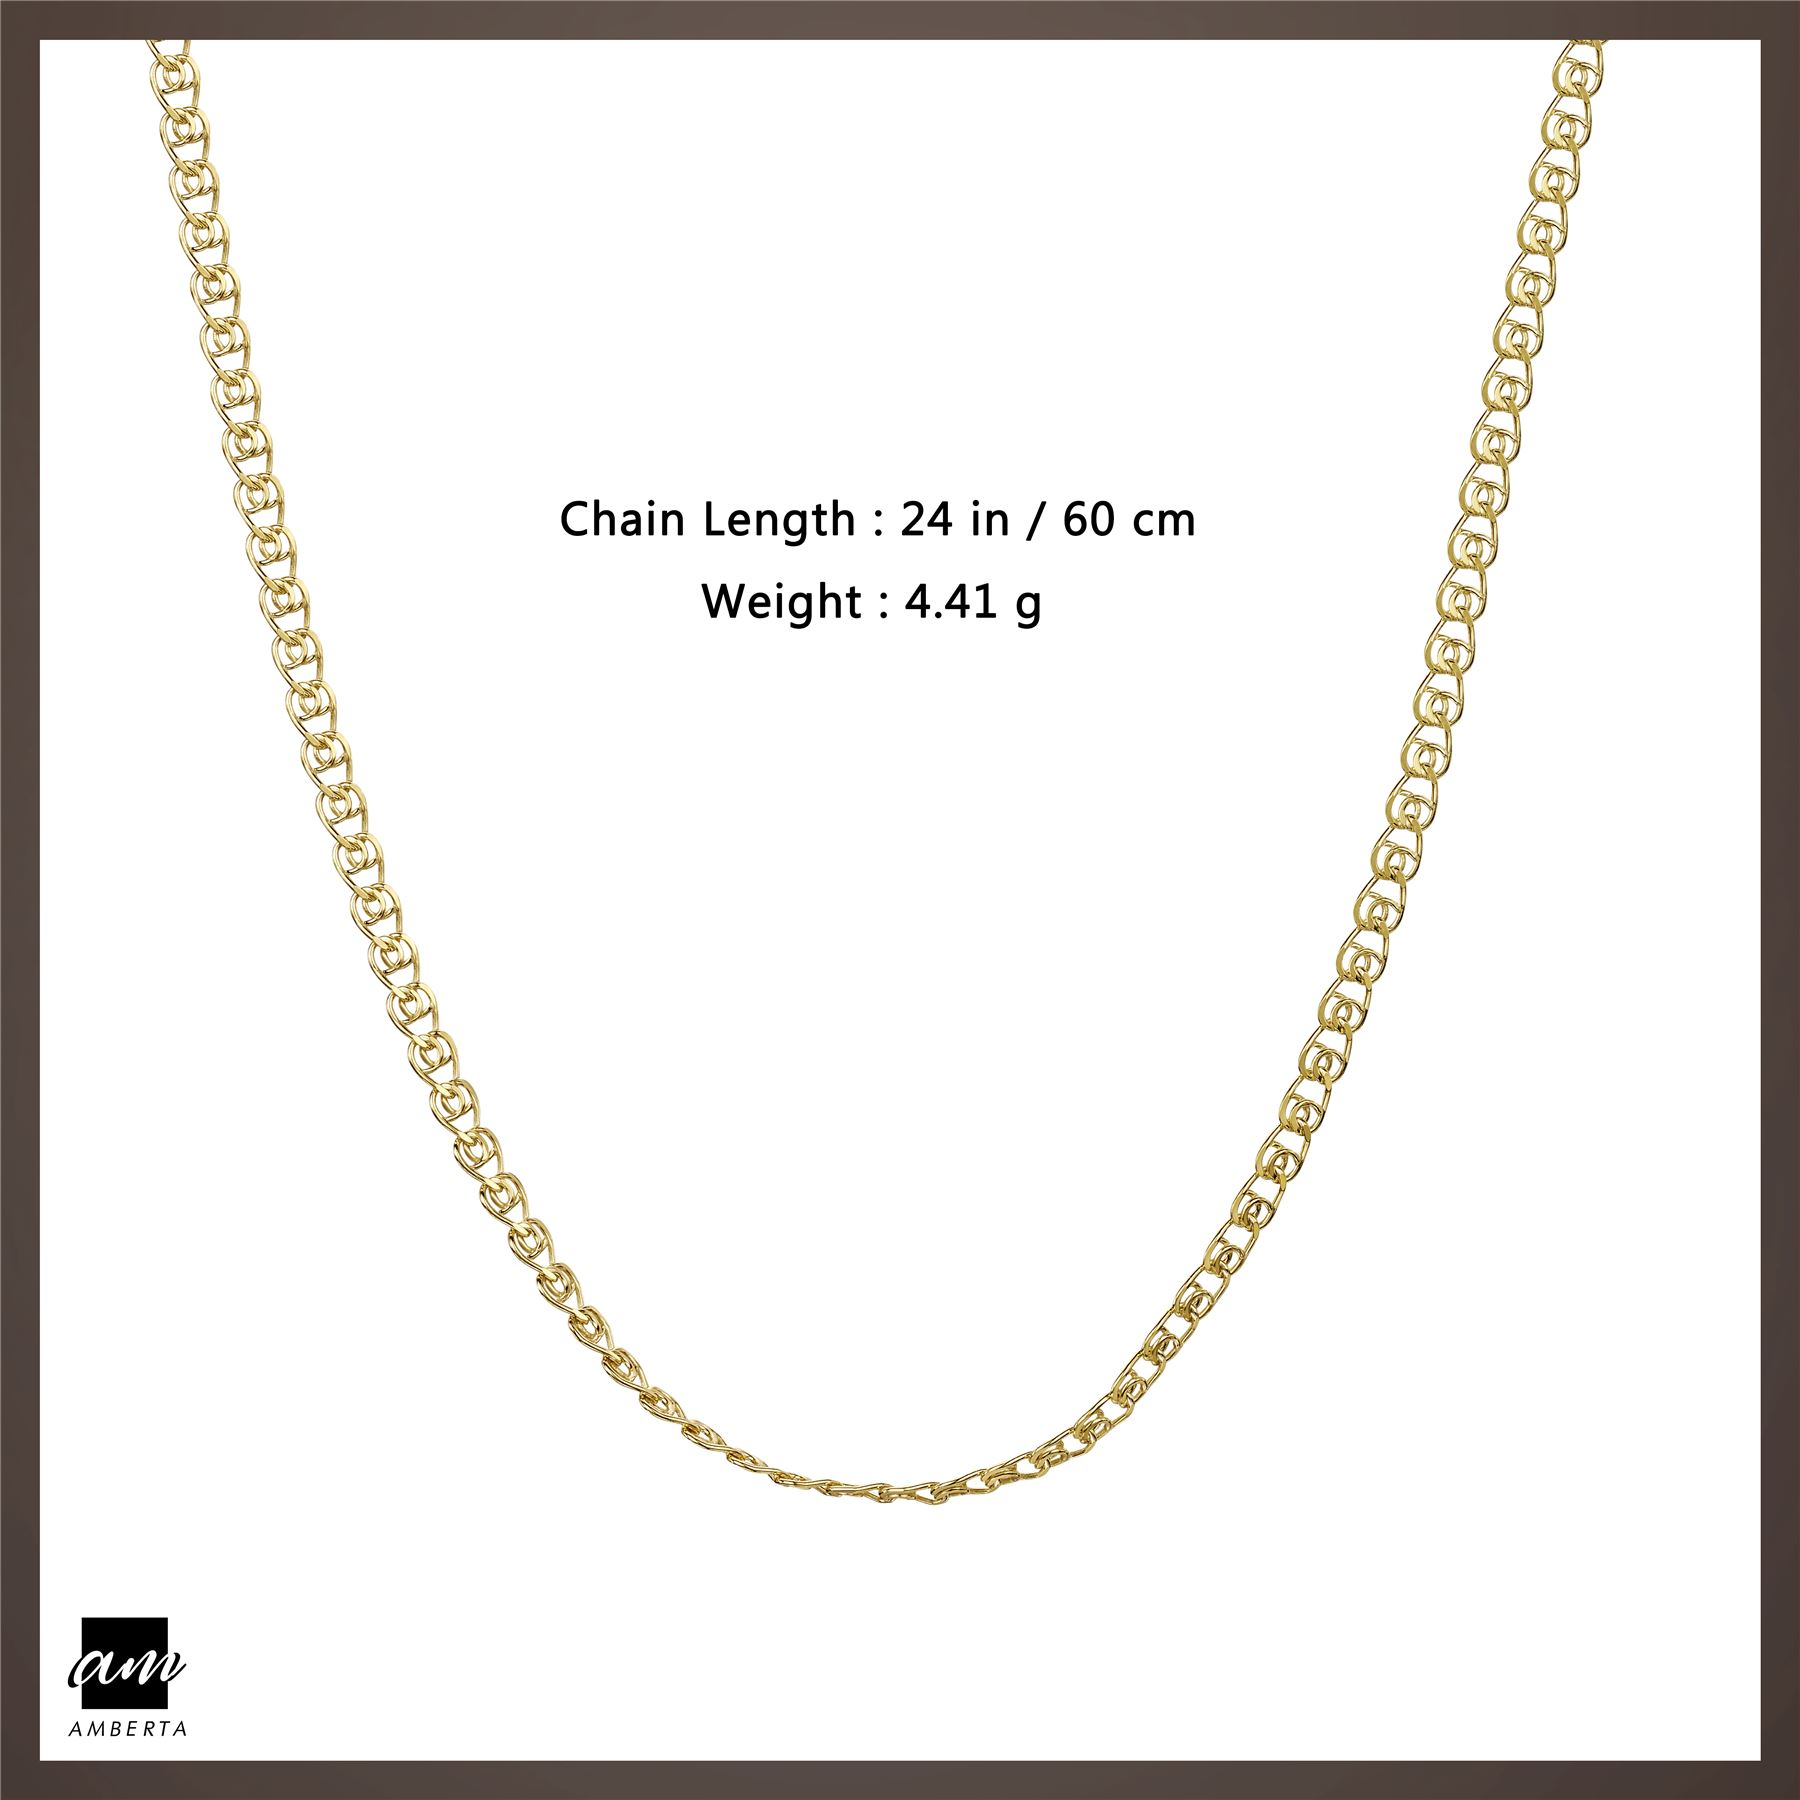 Amberta-Genuine-Gold-Plated-on-Real-925-Sterling-Silver-Necklace-Chain-Italy 縮圖 60